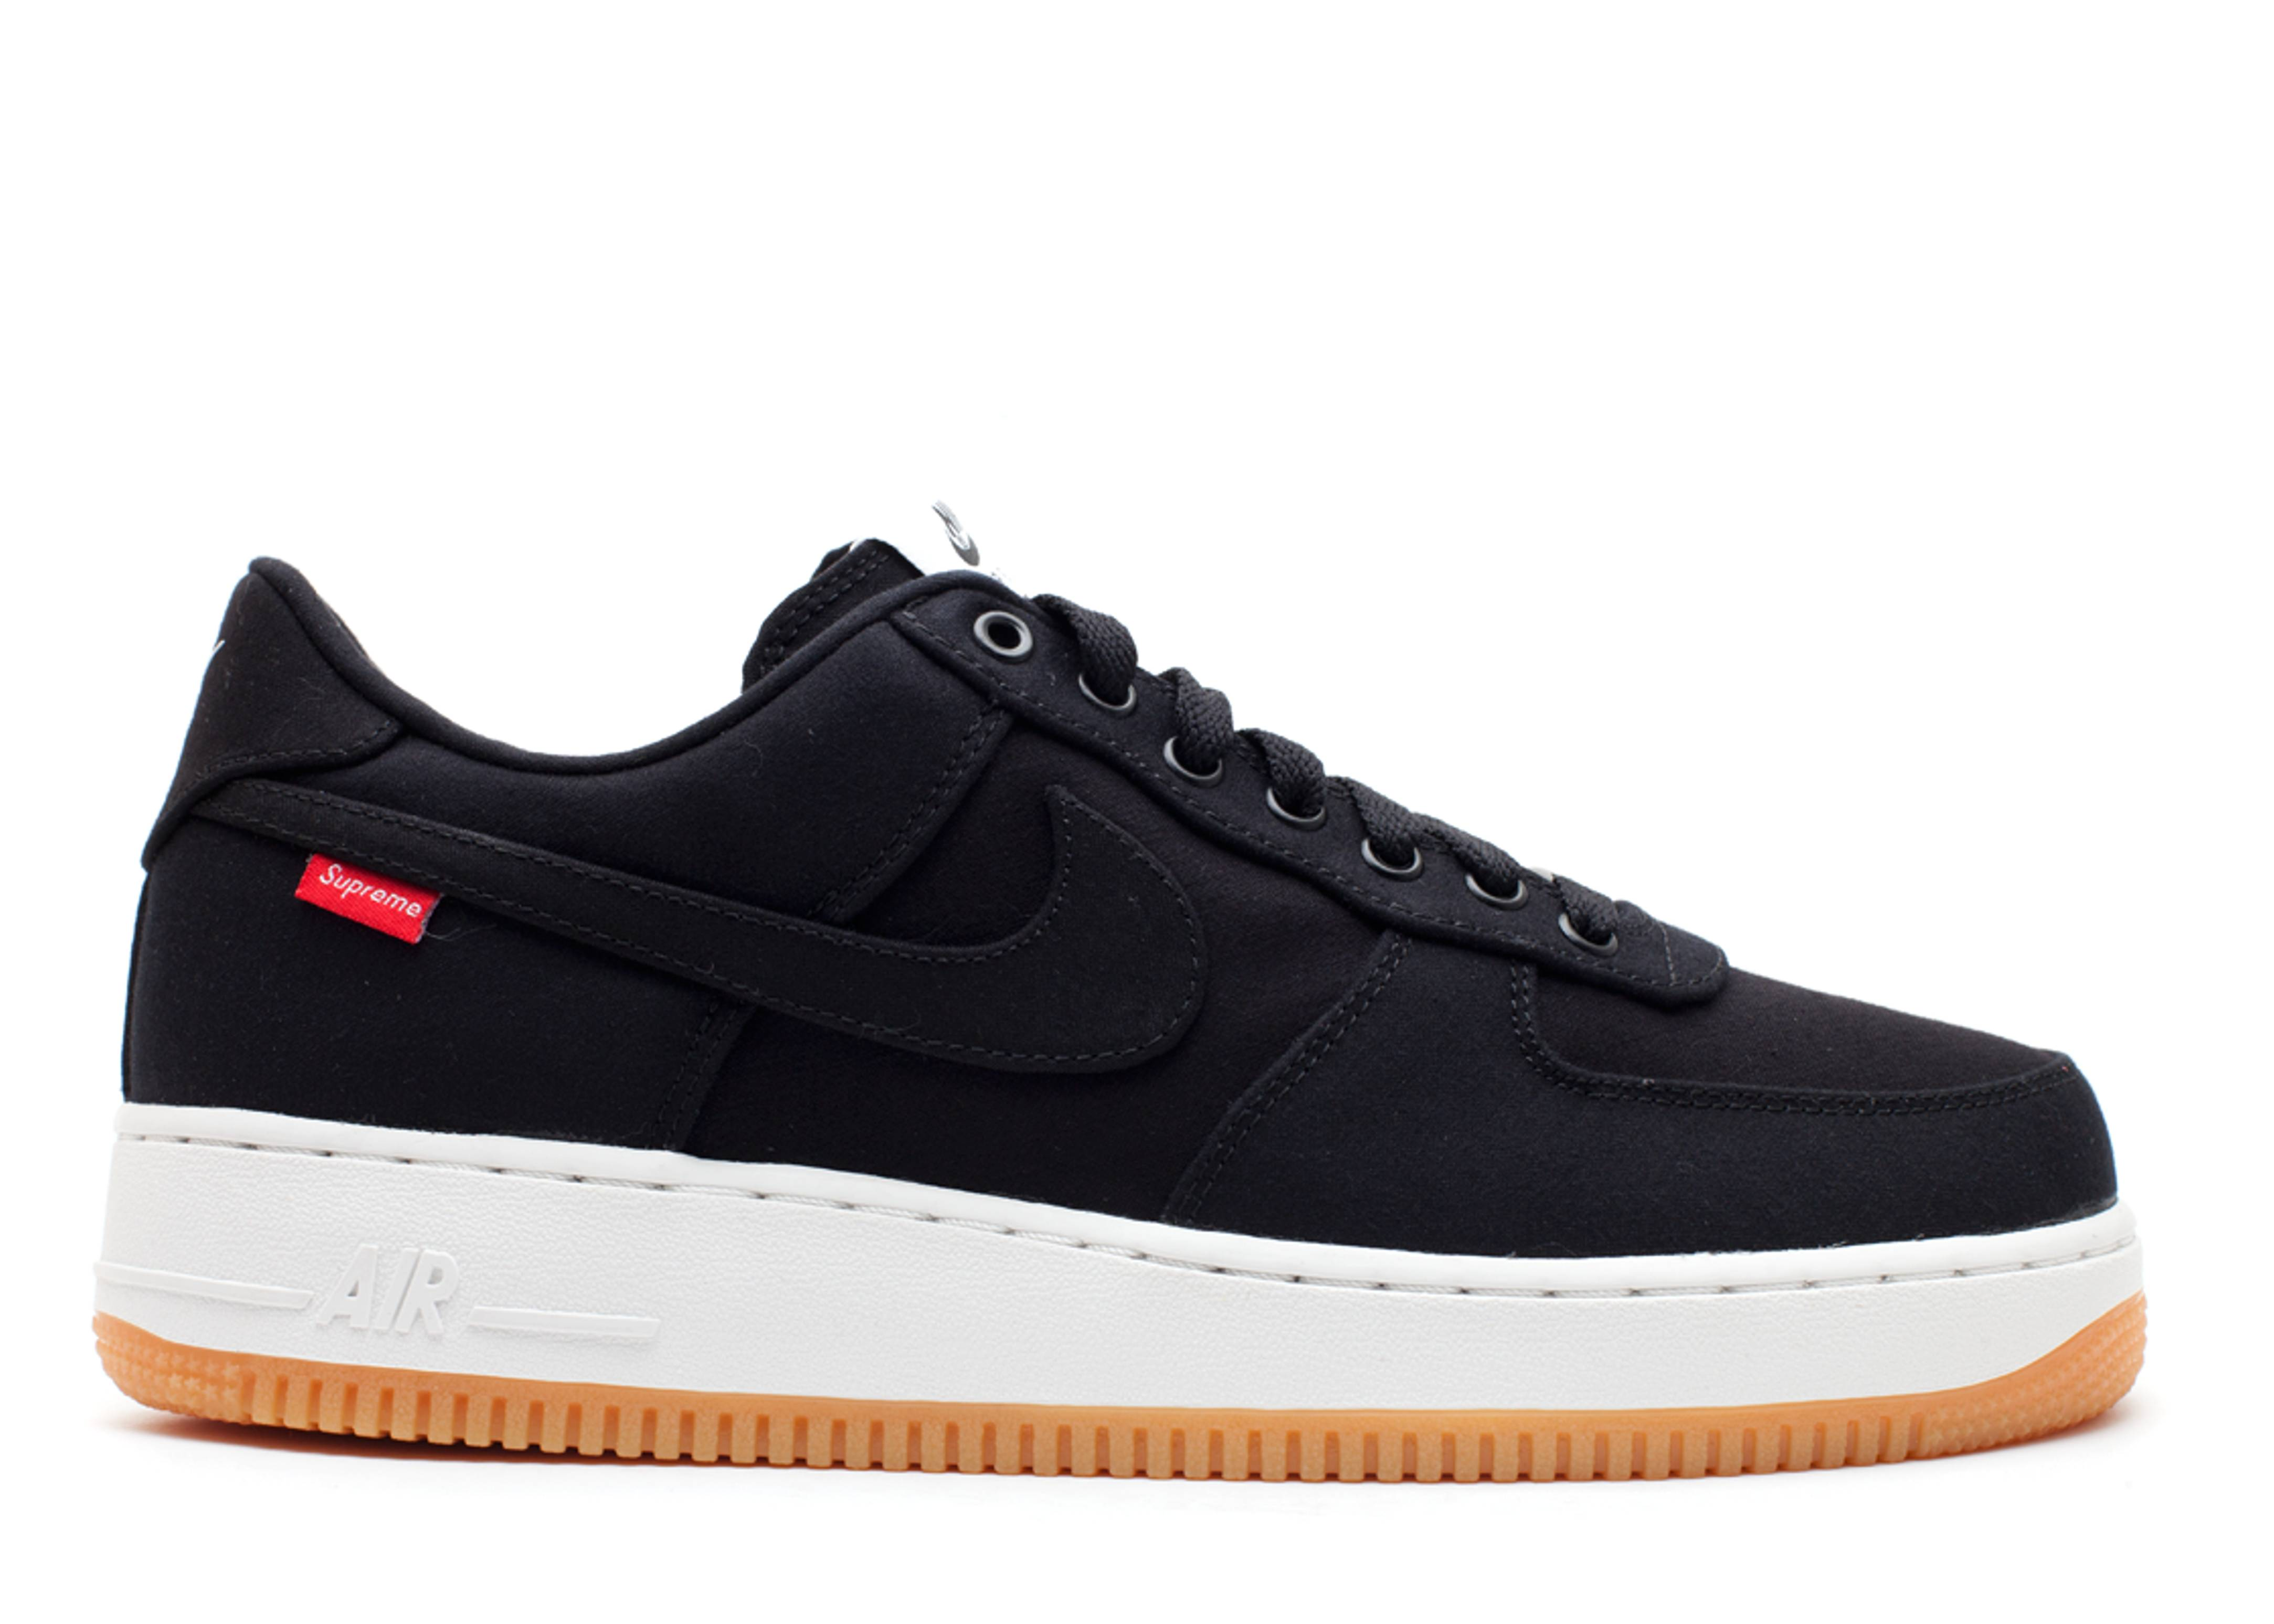 supreme x nike air force 1 low svart. Black Bedroom Furniture Sets. Home Design Ideas